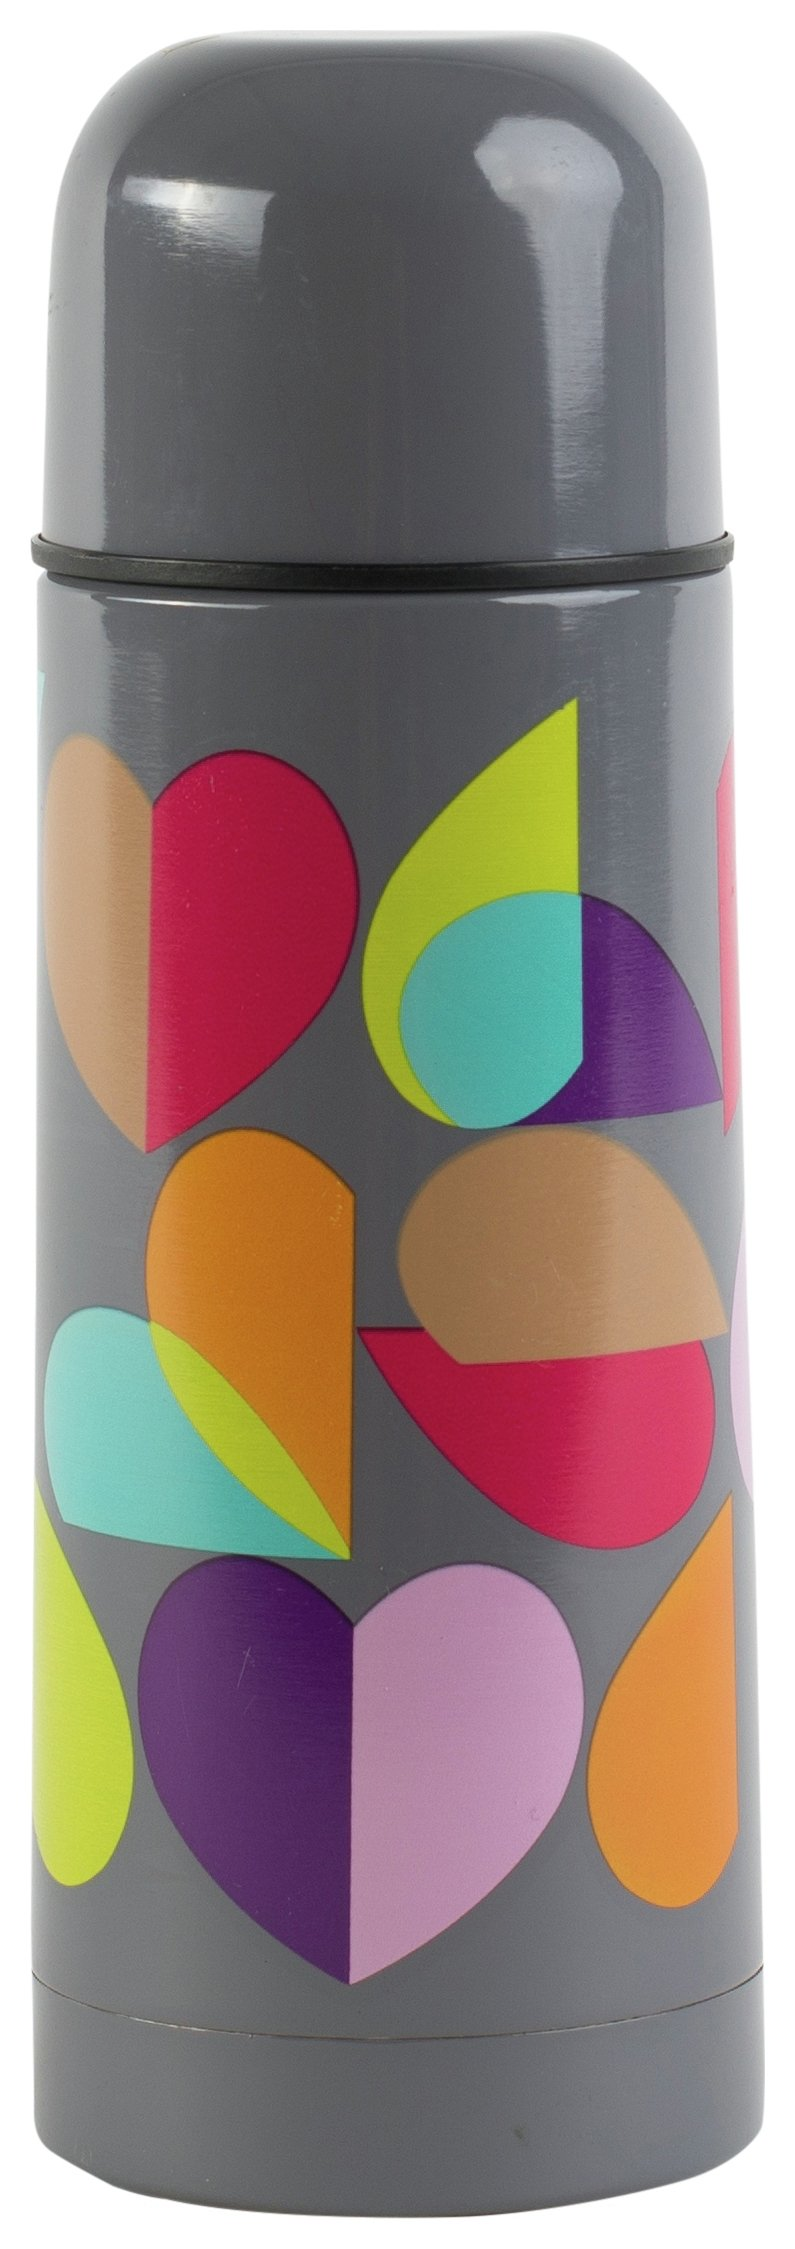 Image of Beau and Elliot Charcoal Vacuum Flask.